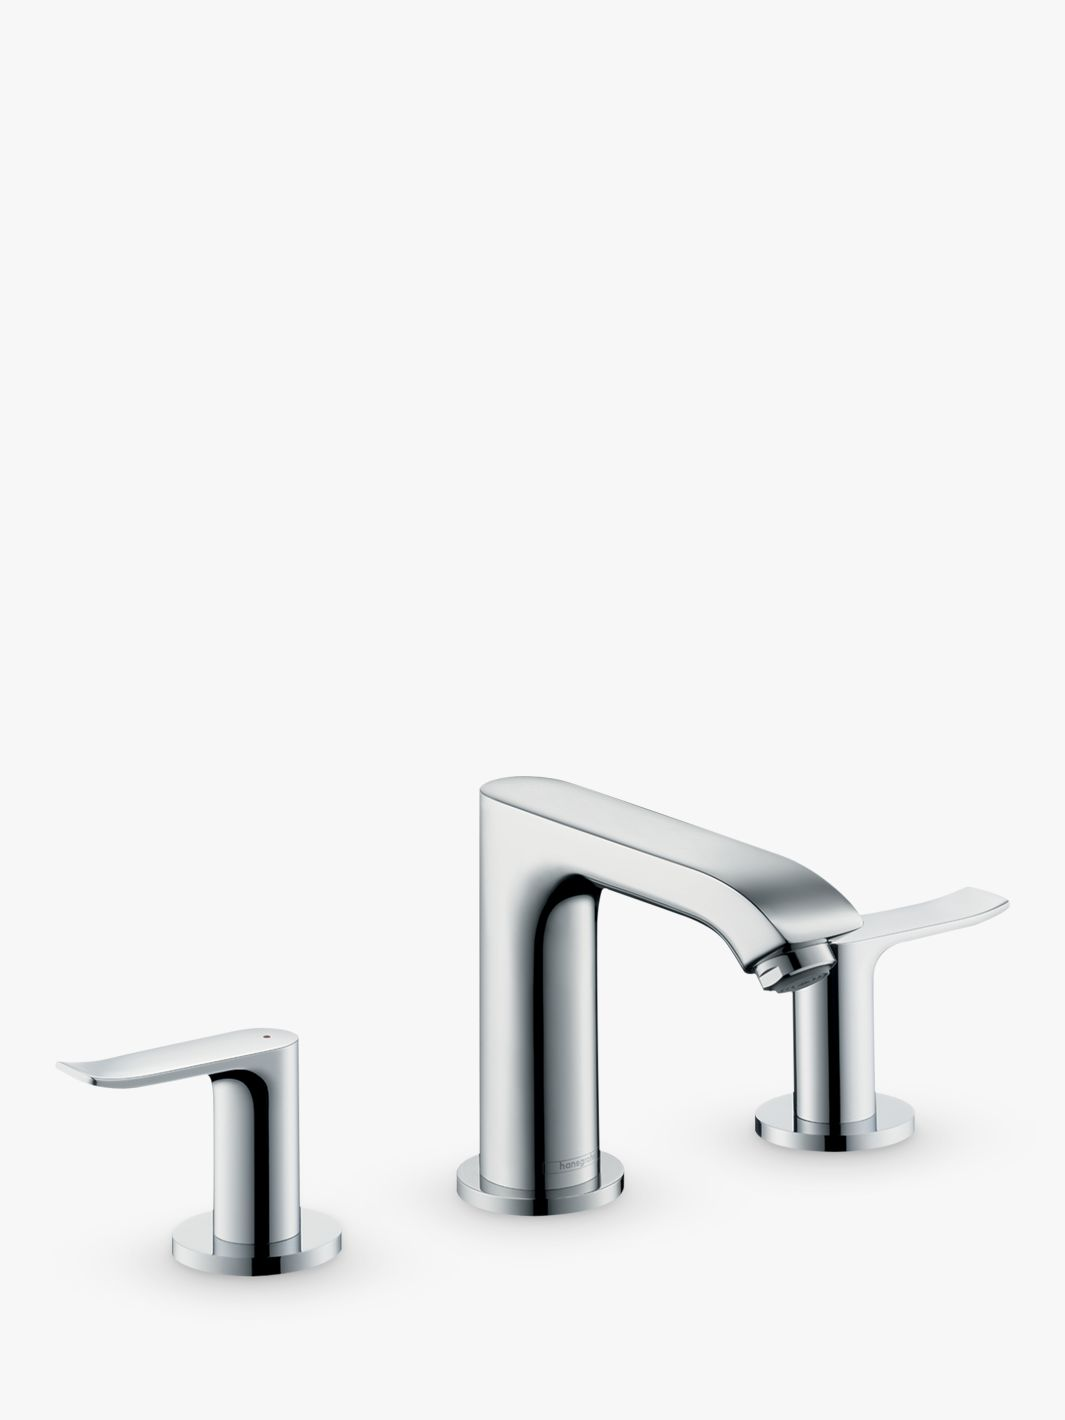 Hansgrohe Hansgrohe Metris 2 Lever 3 Hole Bathroom Basin Mixer Tap, Chrome